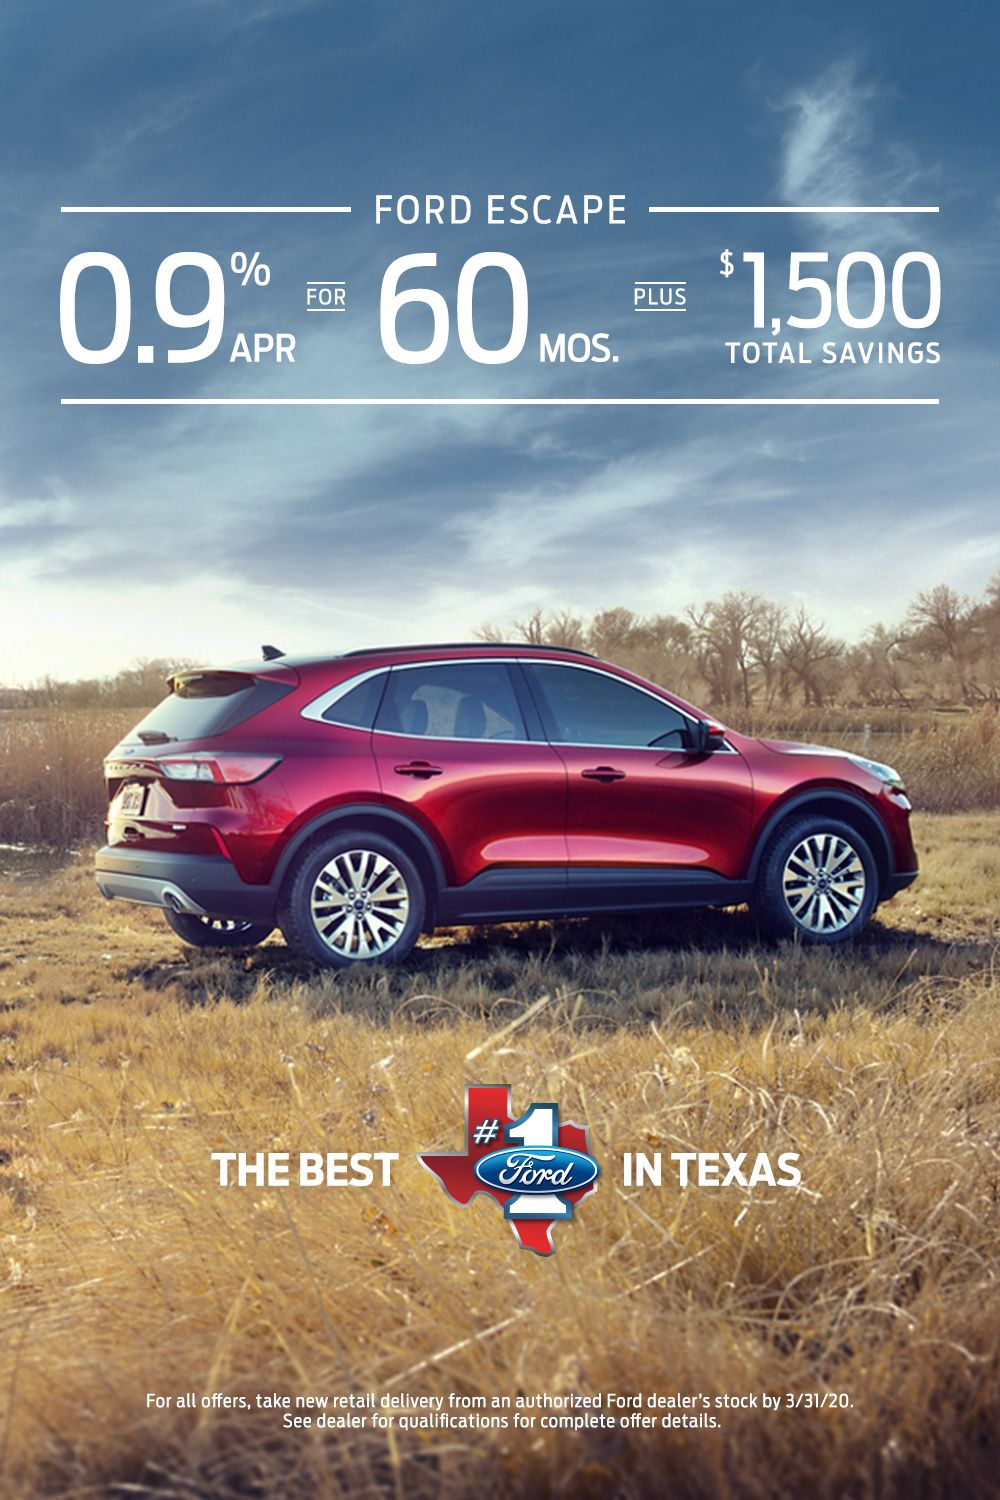 Everything Is Bigger In Texas Including The Distance You Have To Drive To Go Anywhere The 2020 Ford Escape Was Built F In 2020 Ford Escape Ford Ford Motor Company